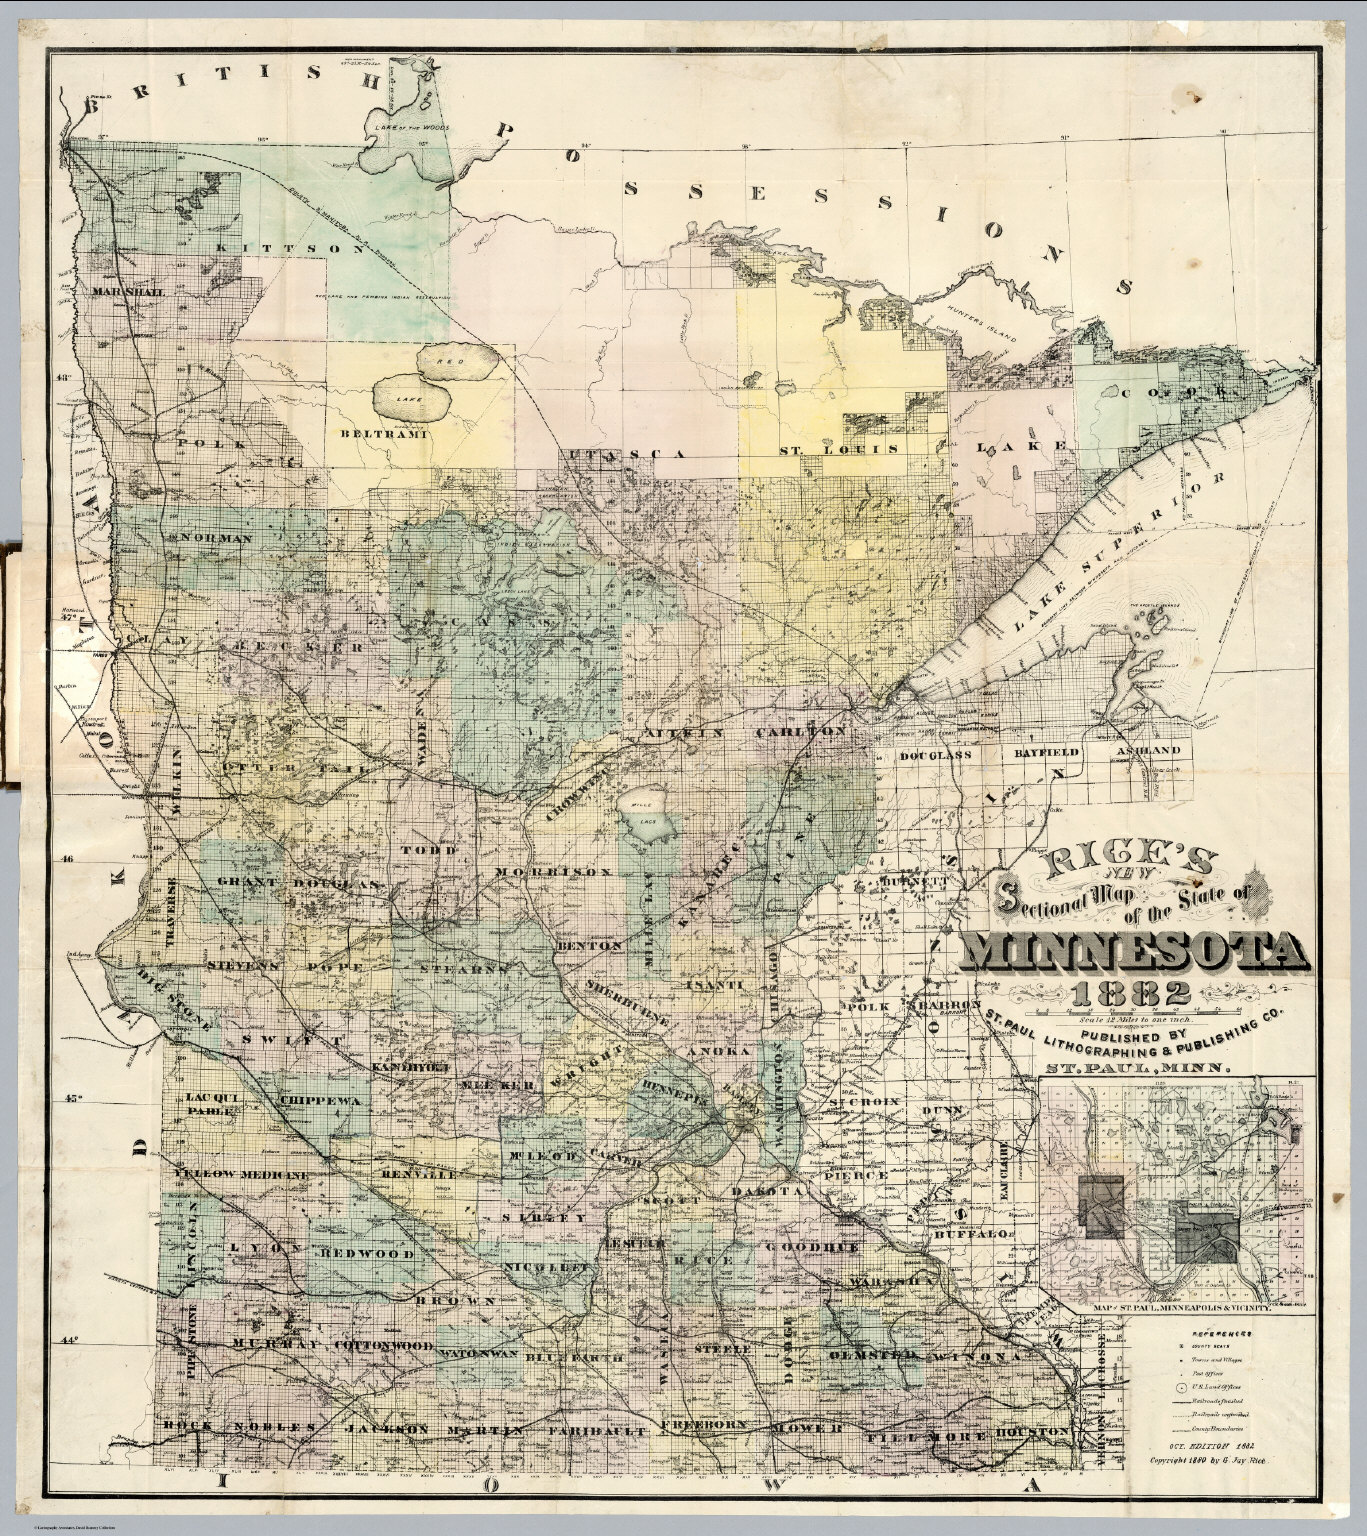 Map Of The State Of Minnesota David Rumsey Historical Map - The map of minnesota